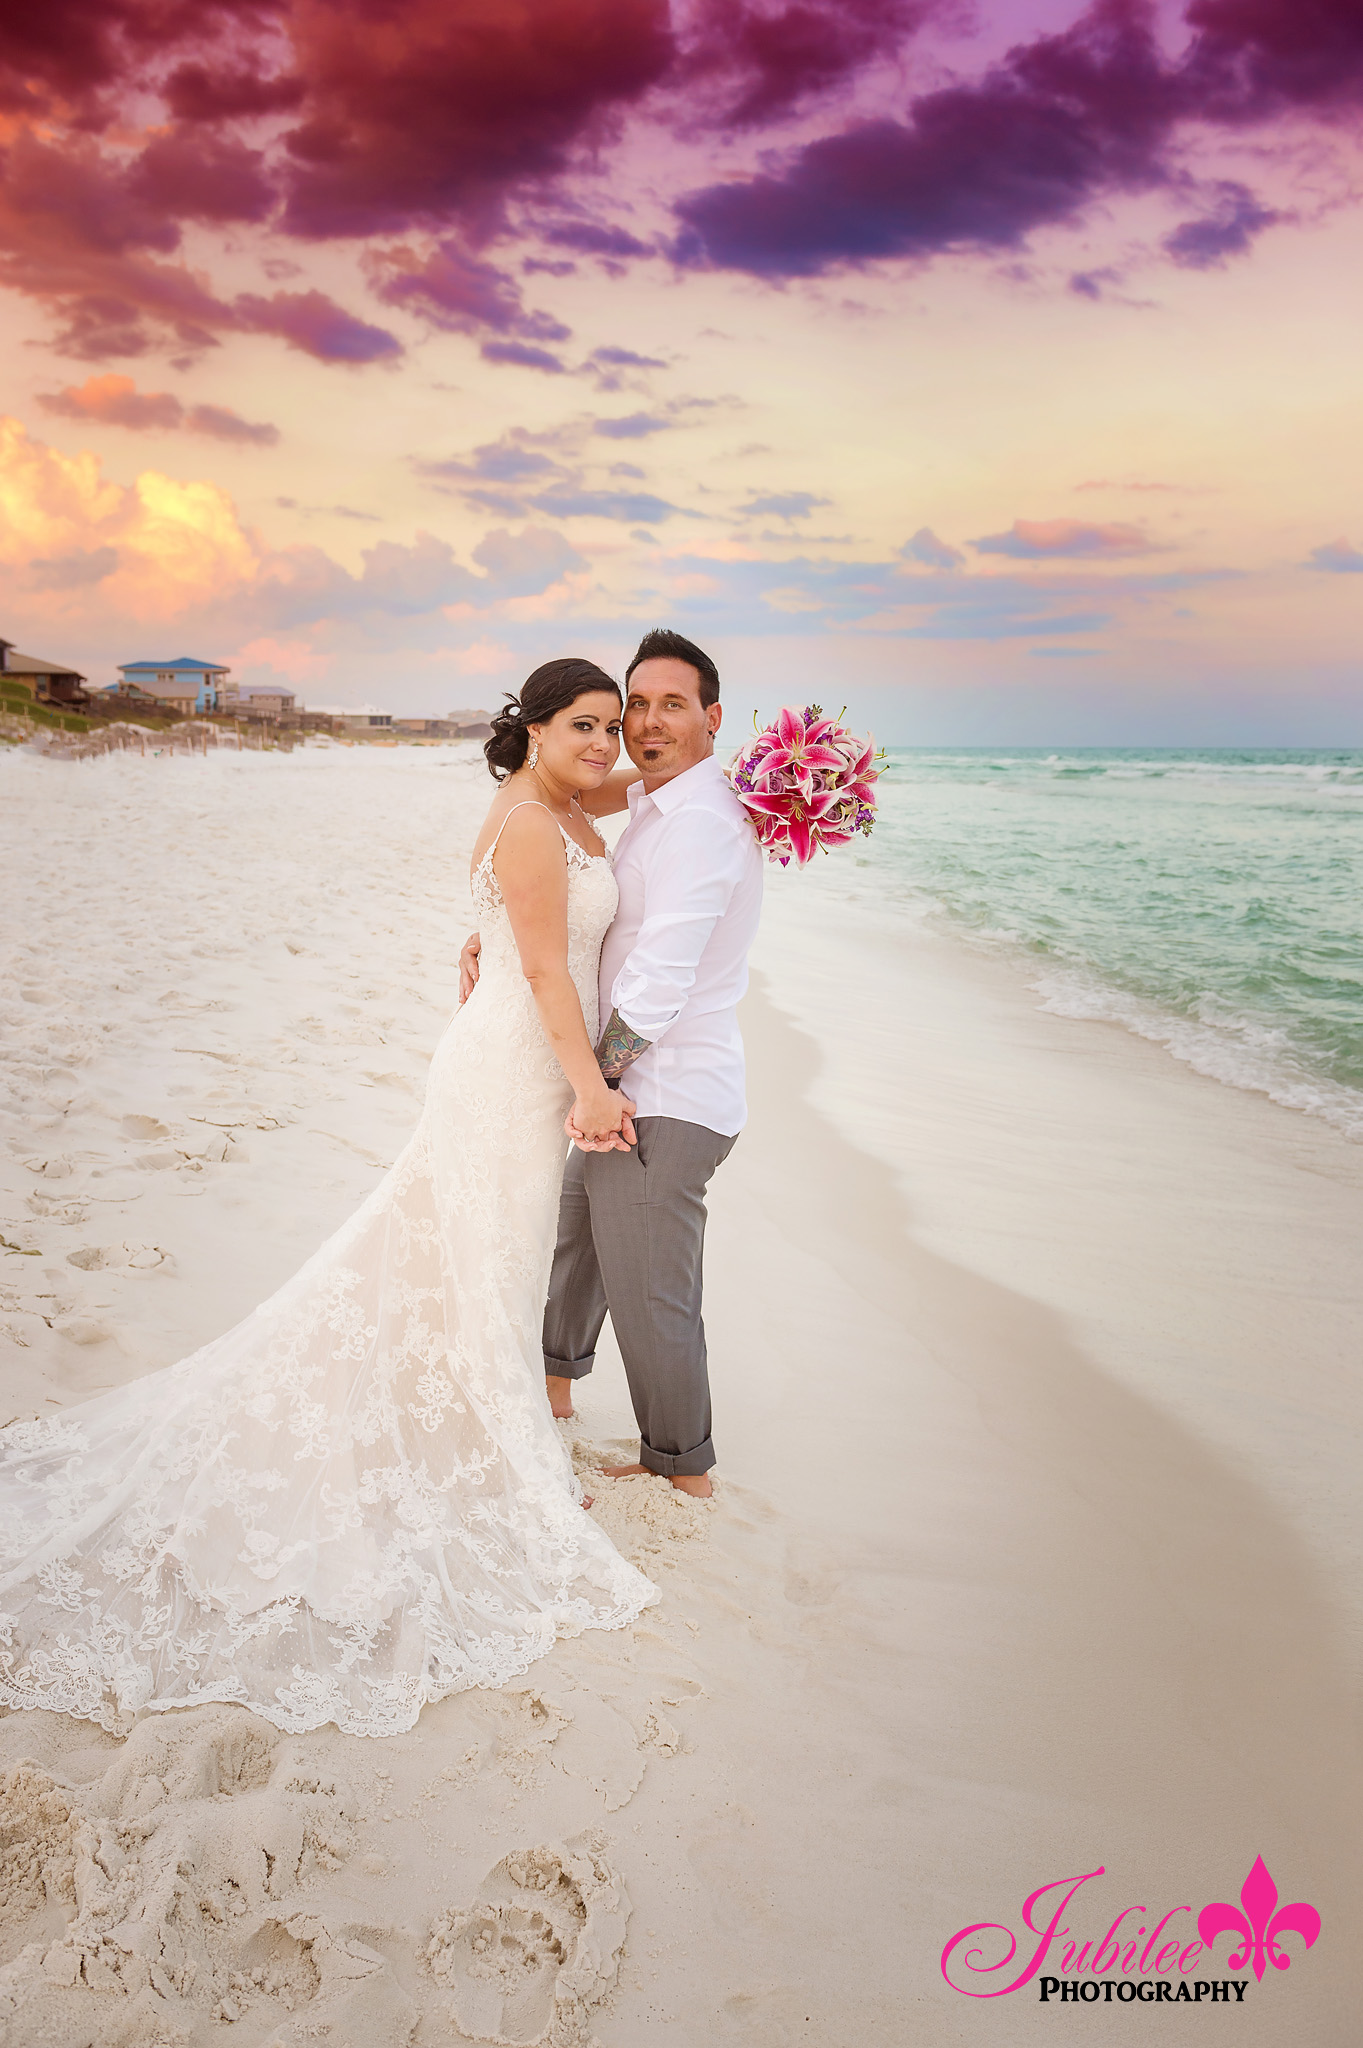 30A_Wedding_Photographer_7183